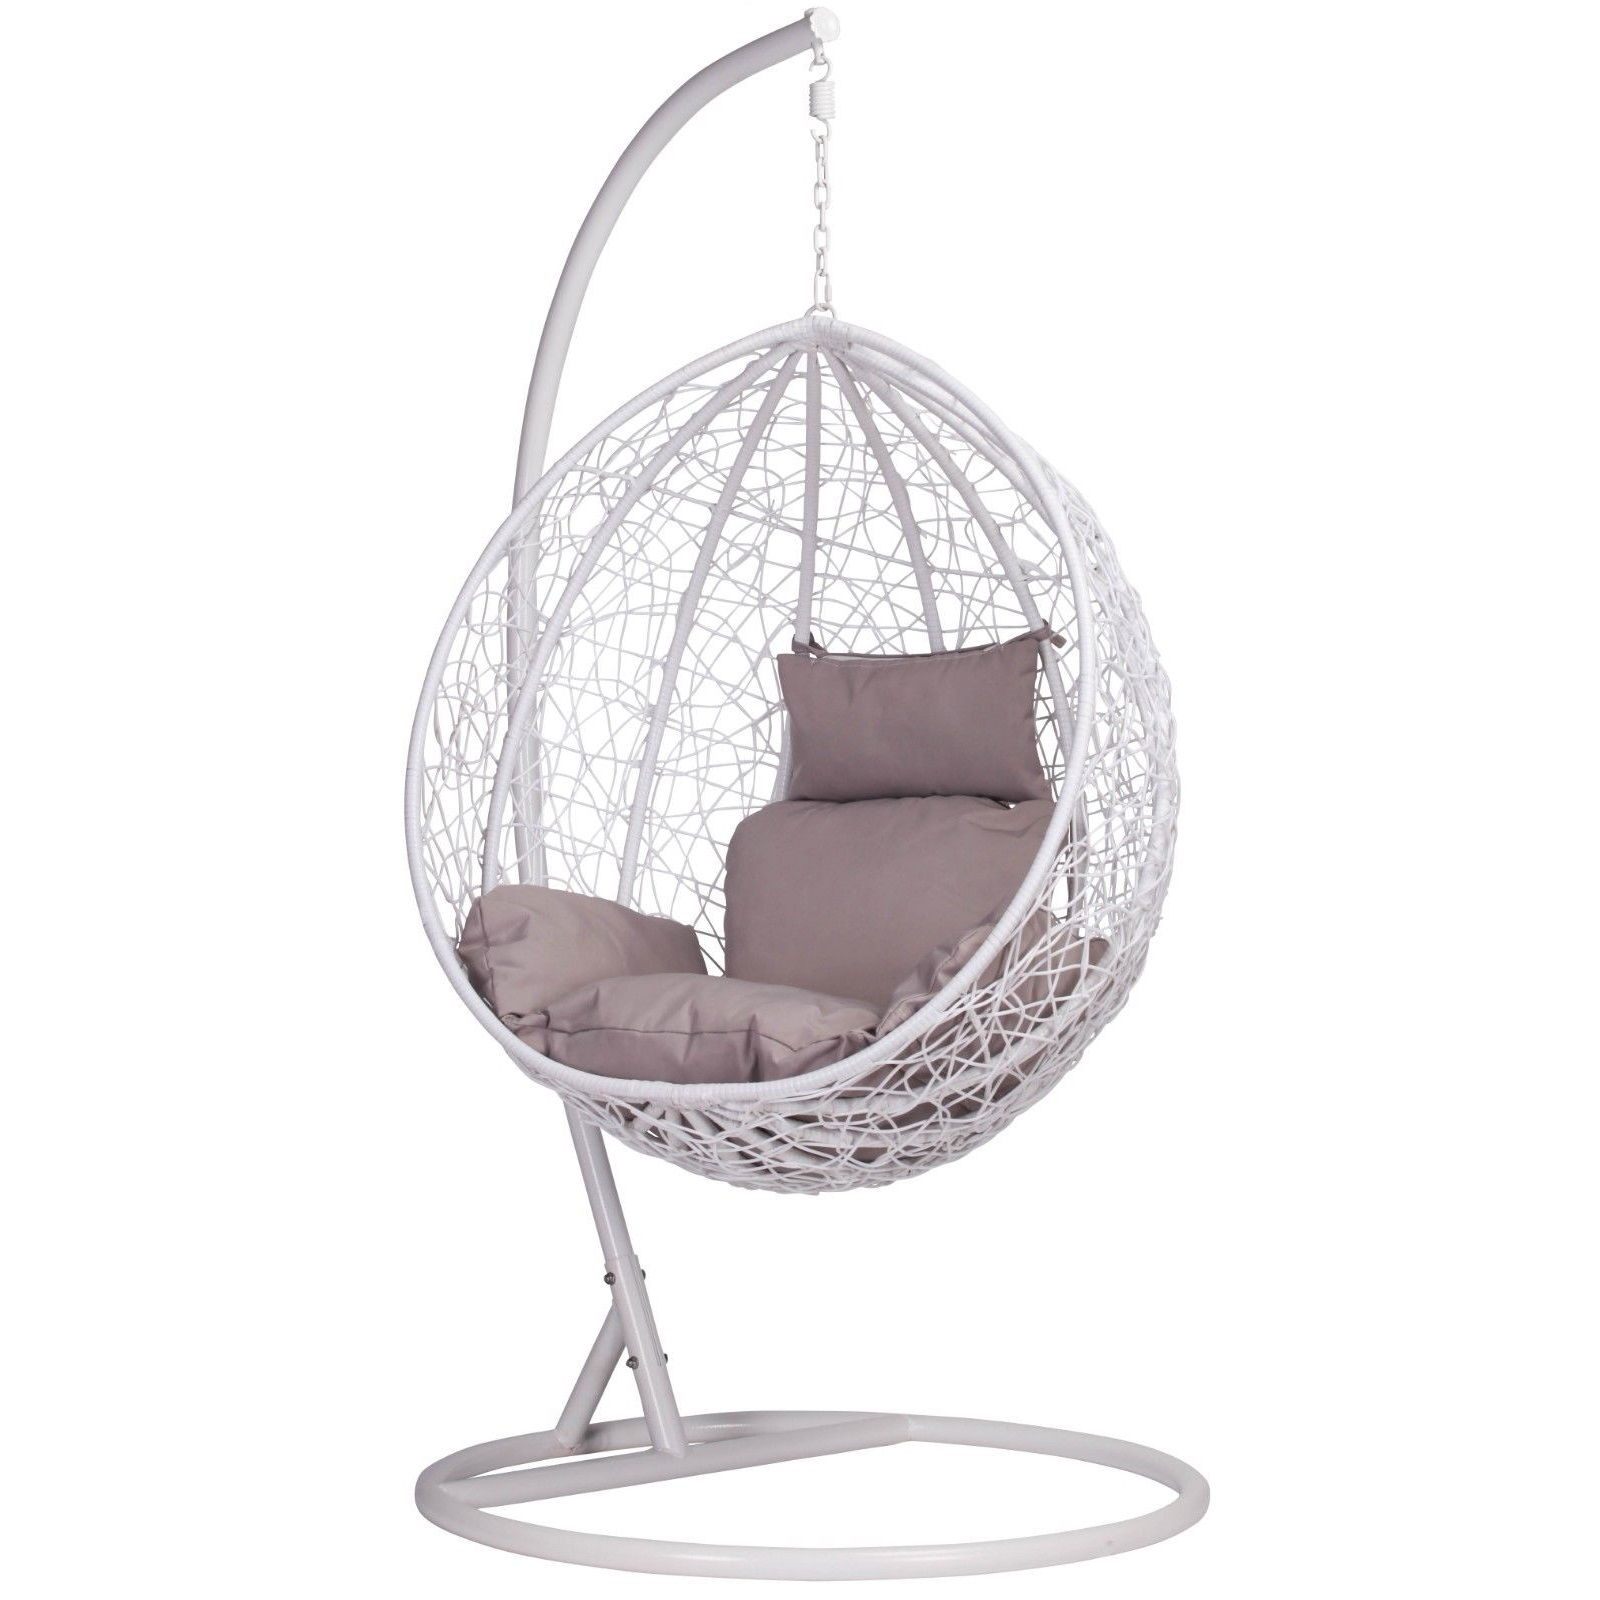 Rattan Egg Chairs White Rattan Swing Weave Patio Garden Hanging Egg Chair